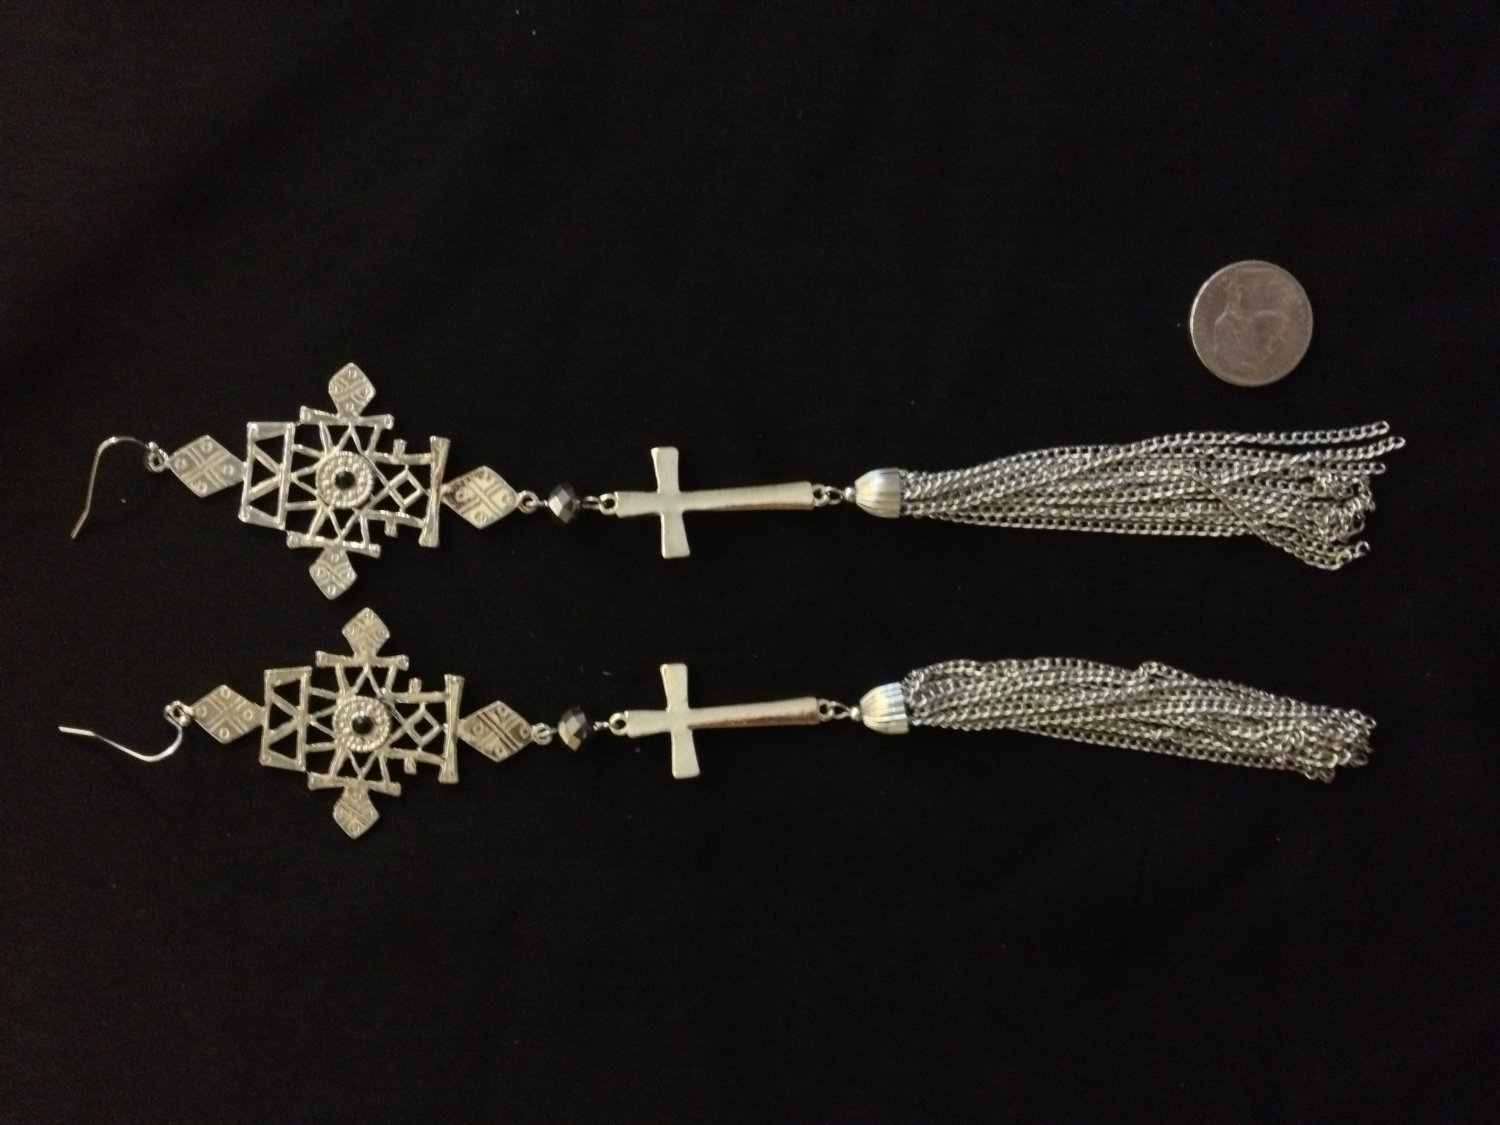 Extra long chains and cross fashion earrings